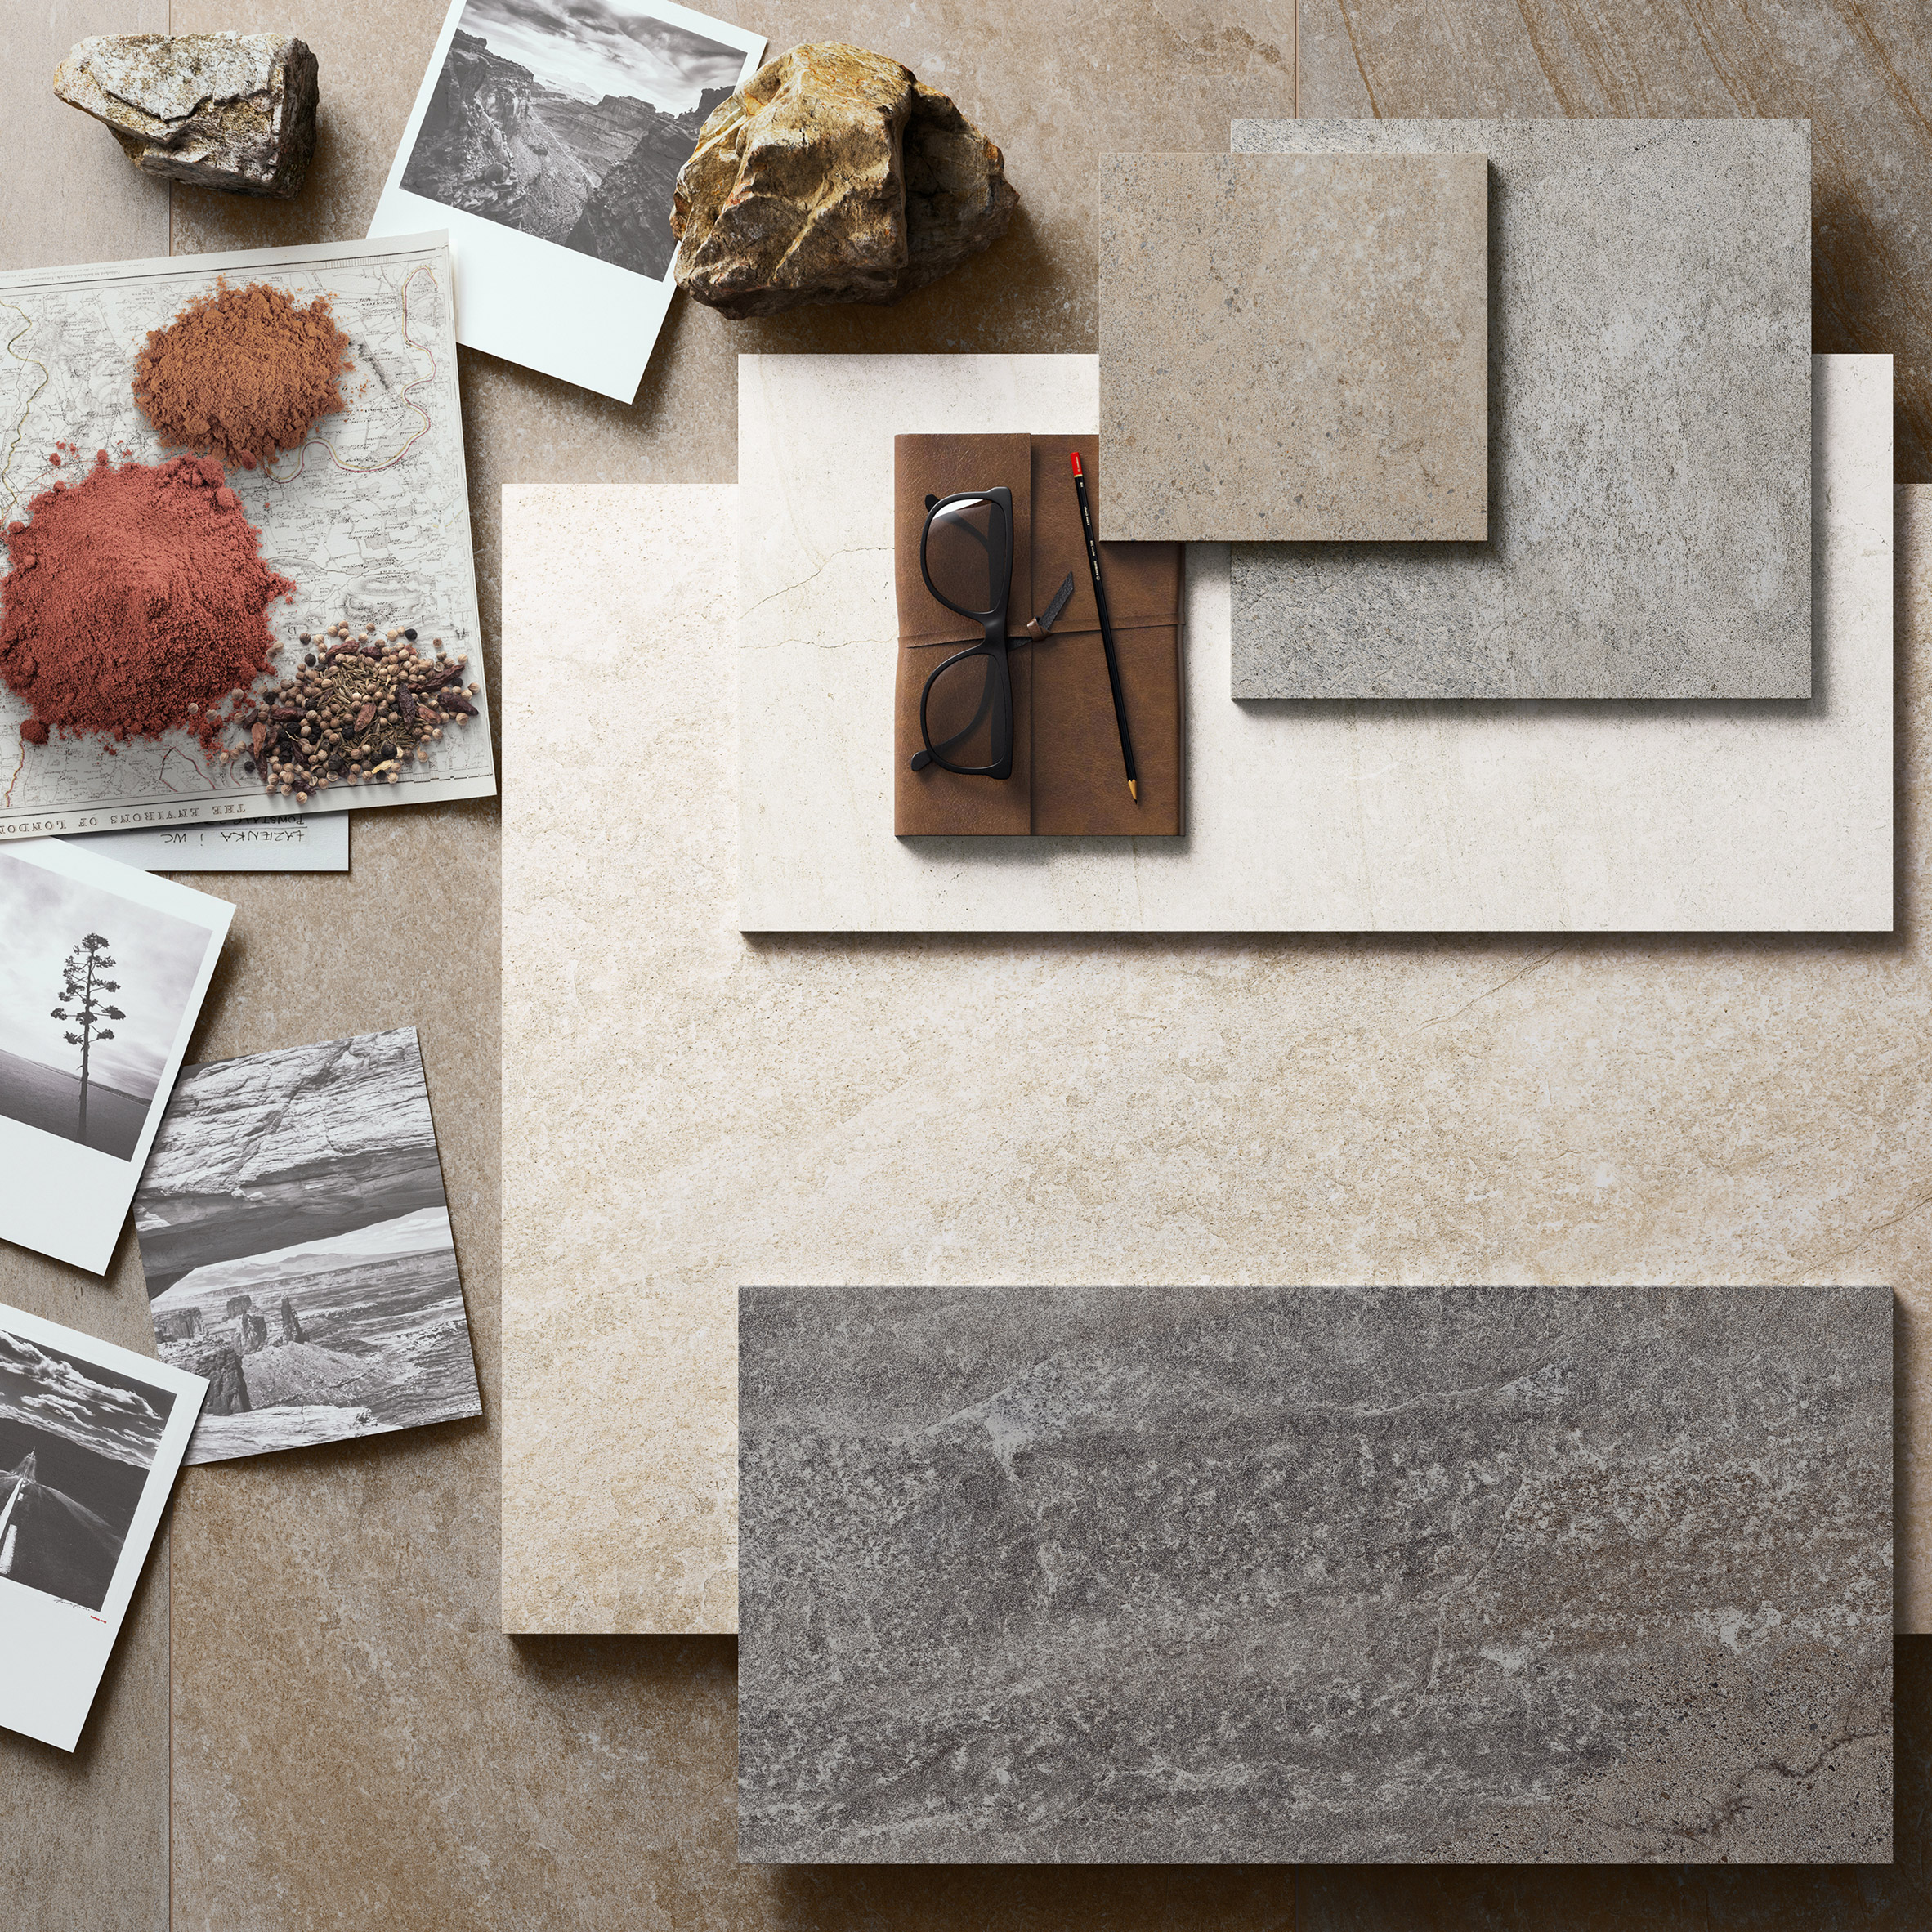 Blended porcelain tiles by Ceramiche Refin